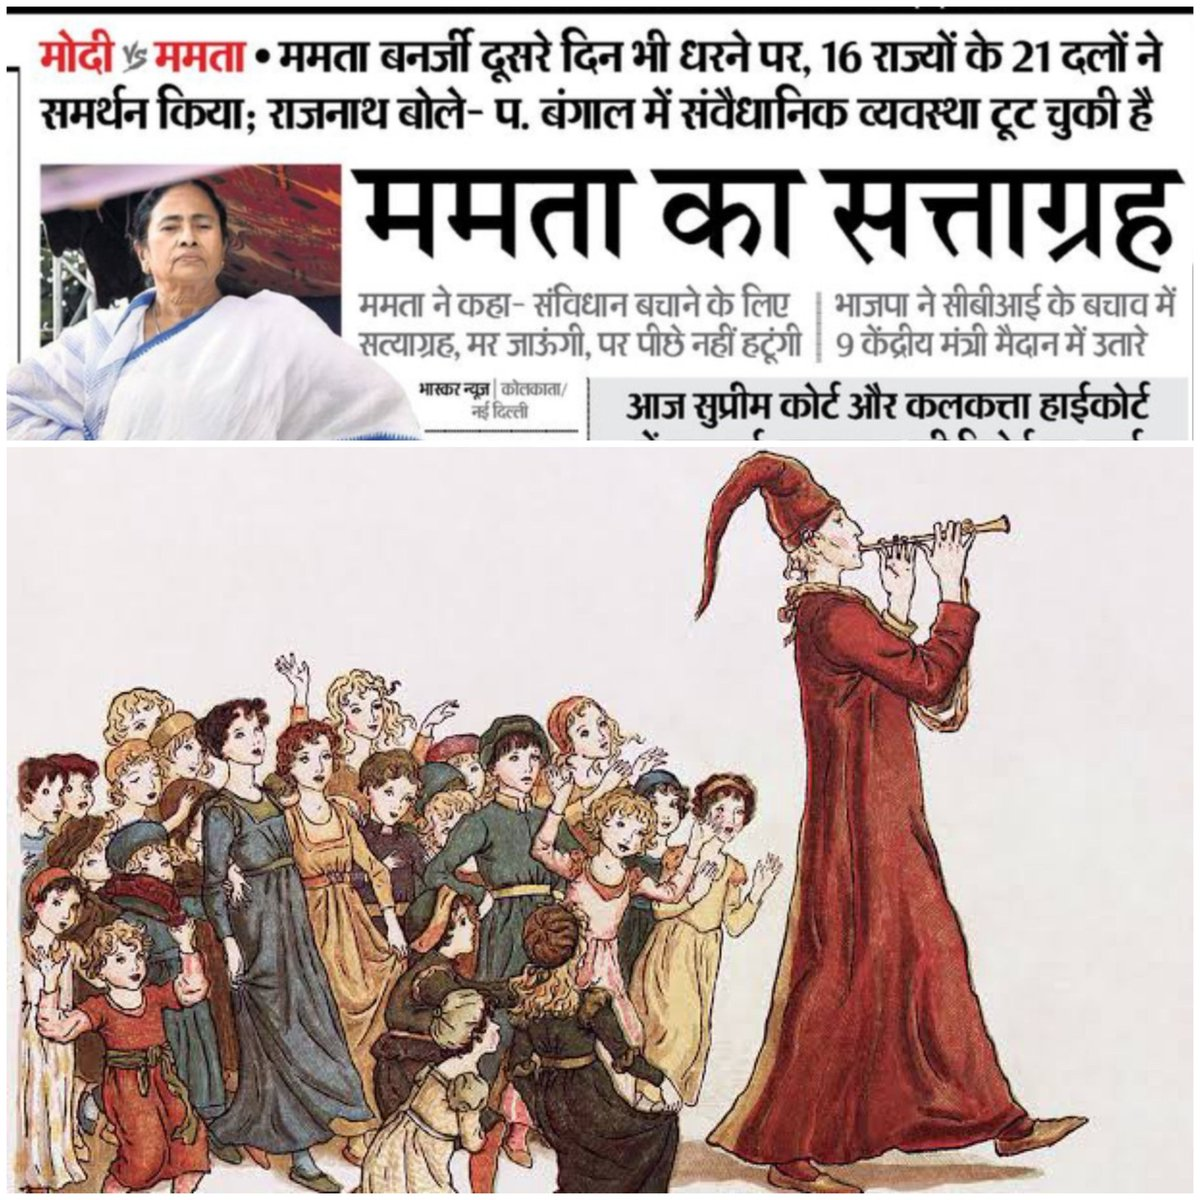 21 Political Parties in support of Mamta....WOW.....reminds me of the  'Pied Piper of Hamelin' #CBIvsMamata #ModiOnceMore<br>http://pic.twitter.com/q3MiftYKcb